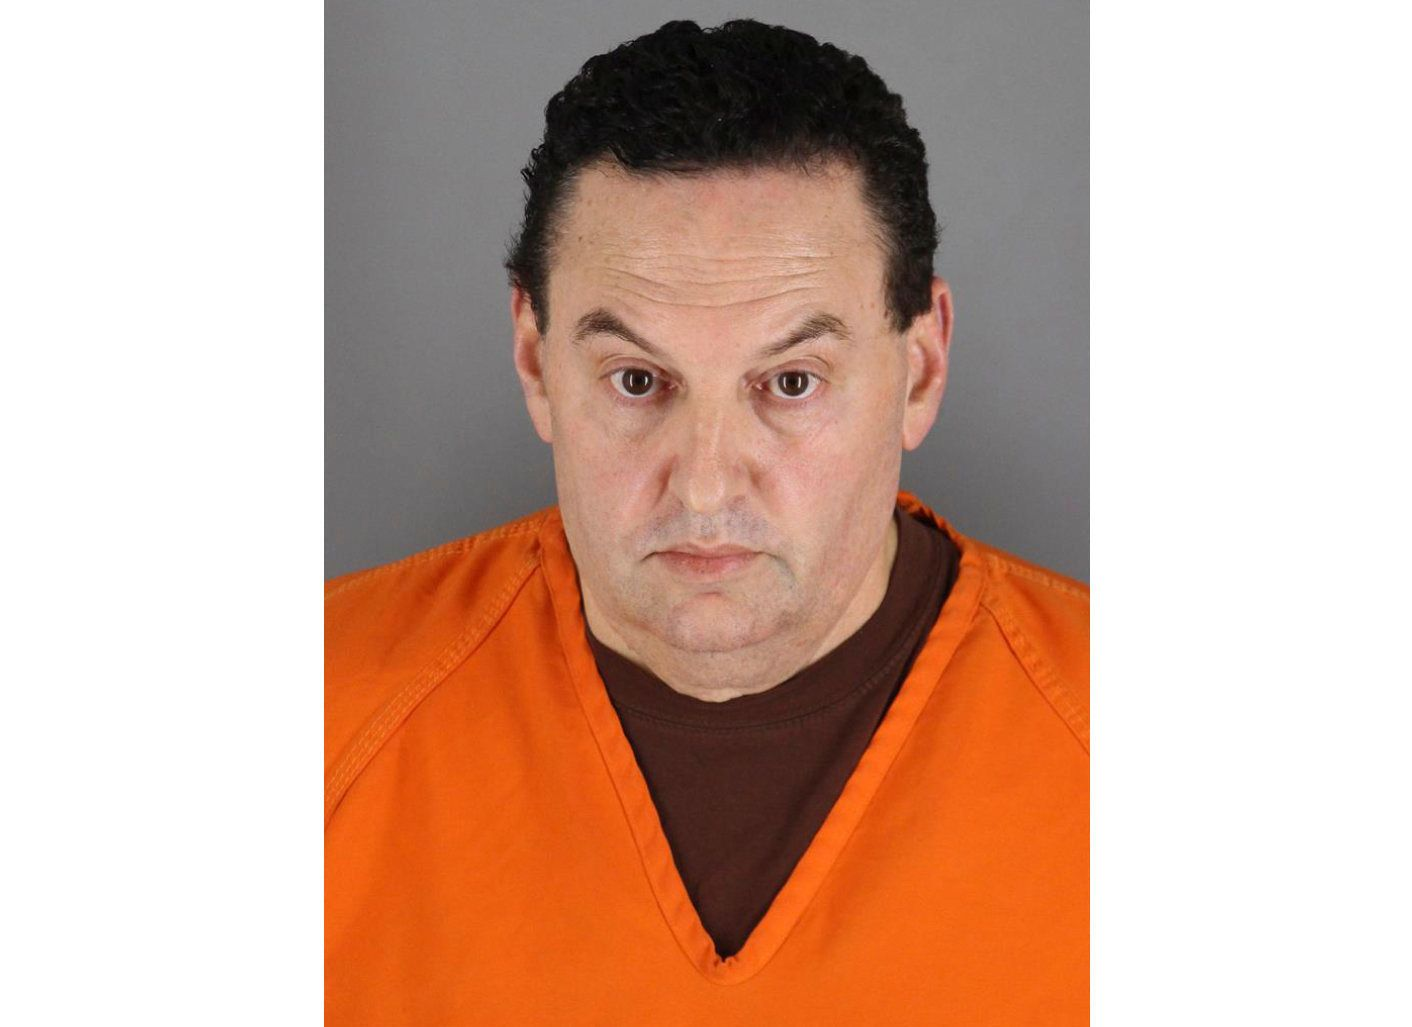 Man Discards Napkin At Hockey Game, Gets Arrested For 1993